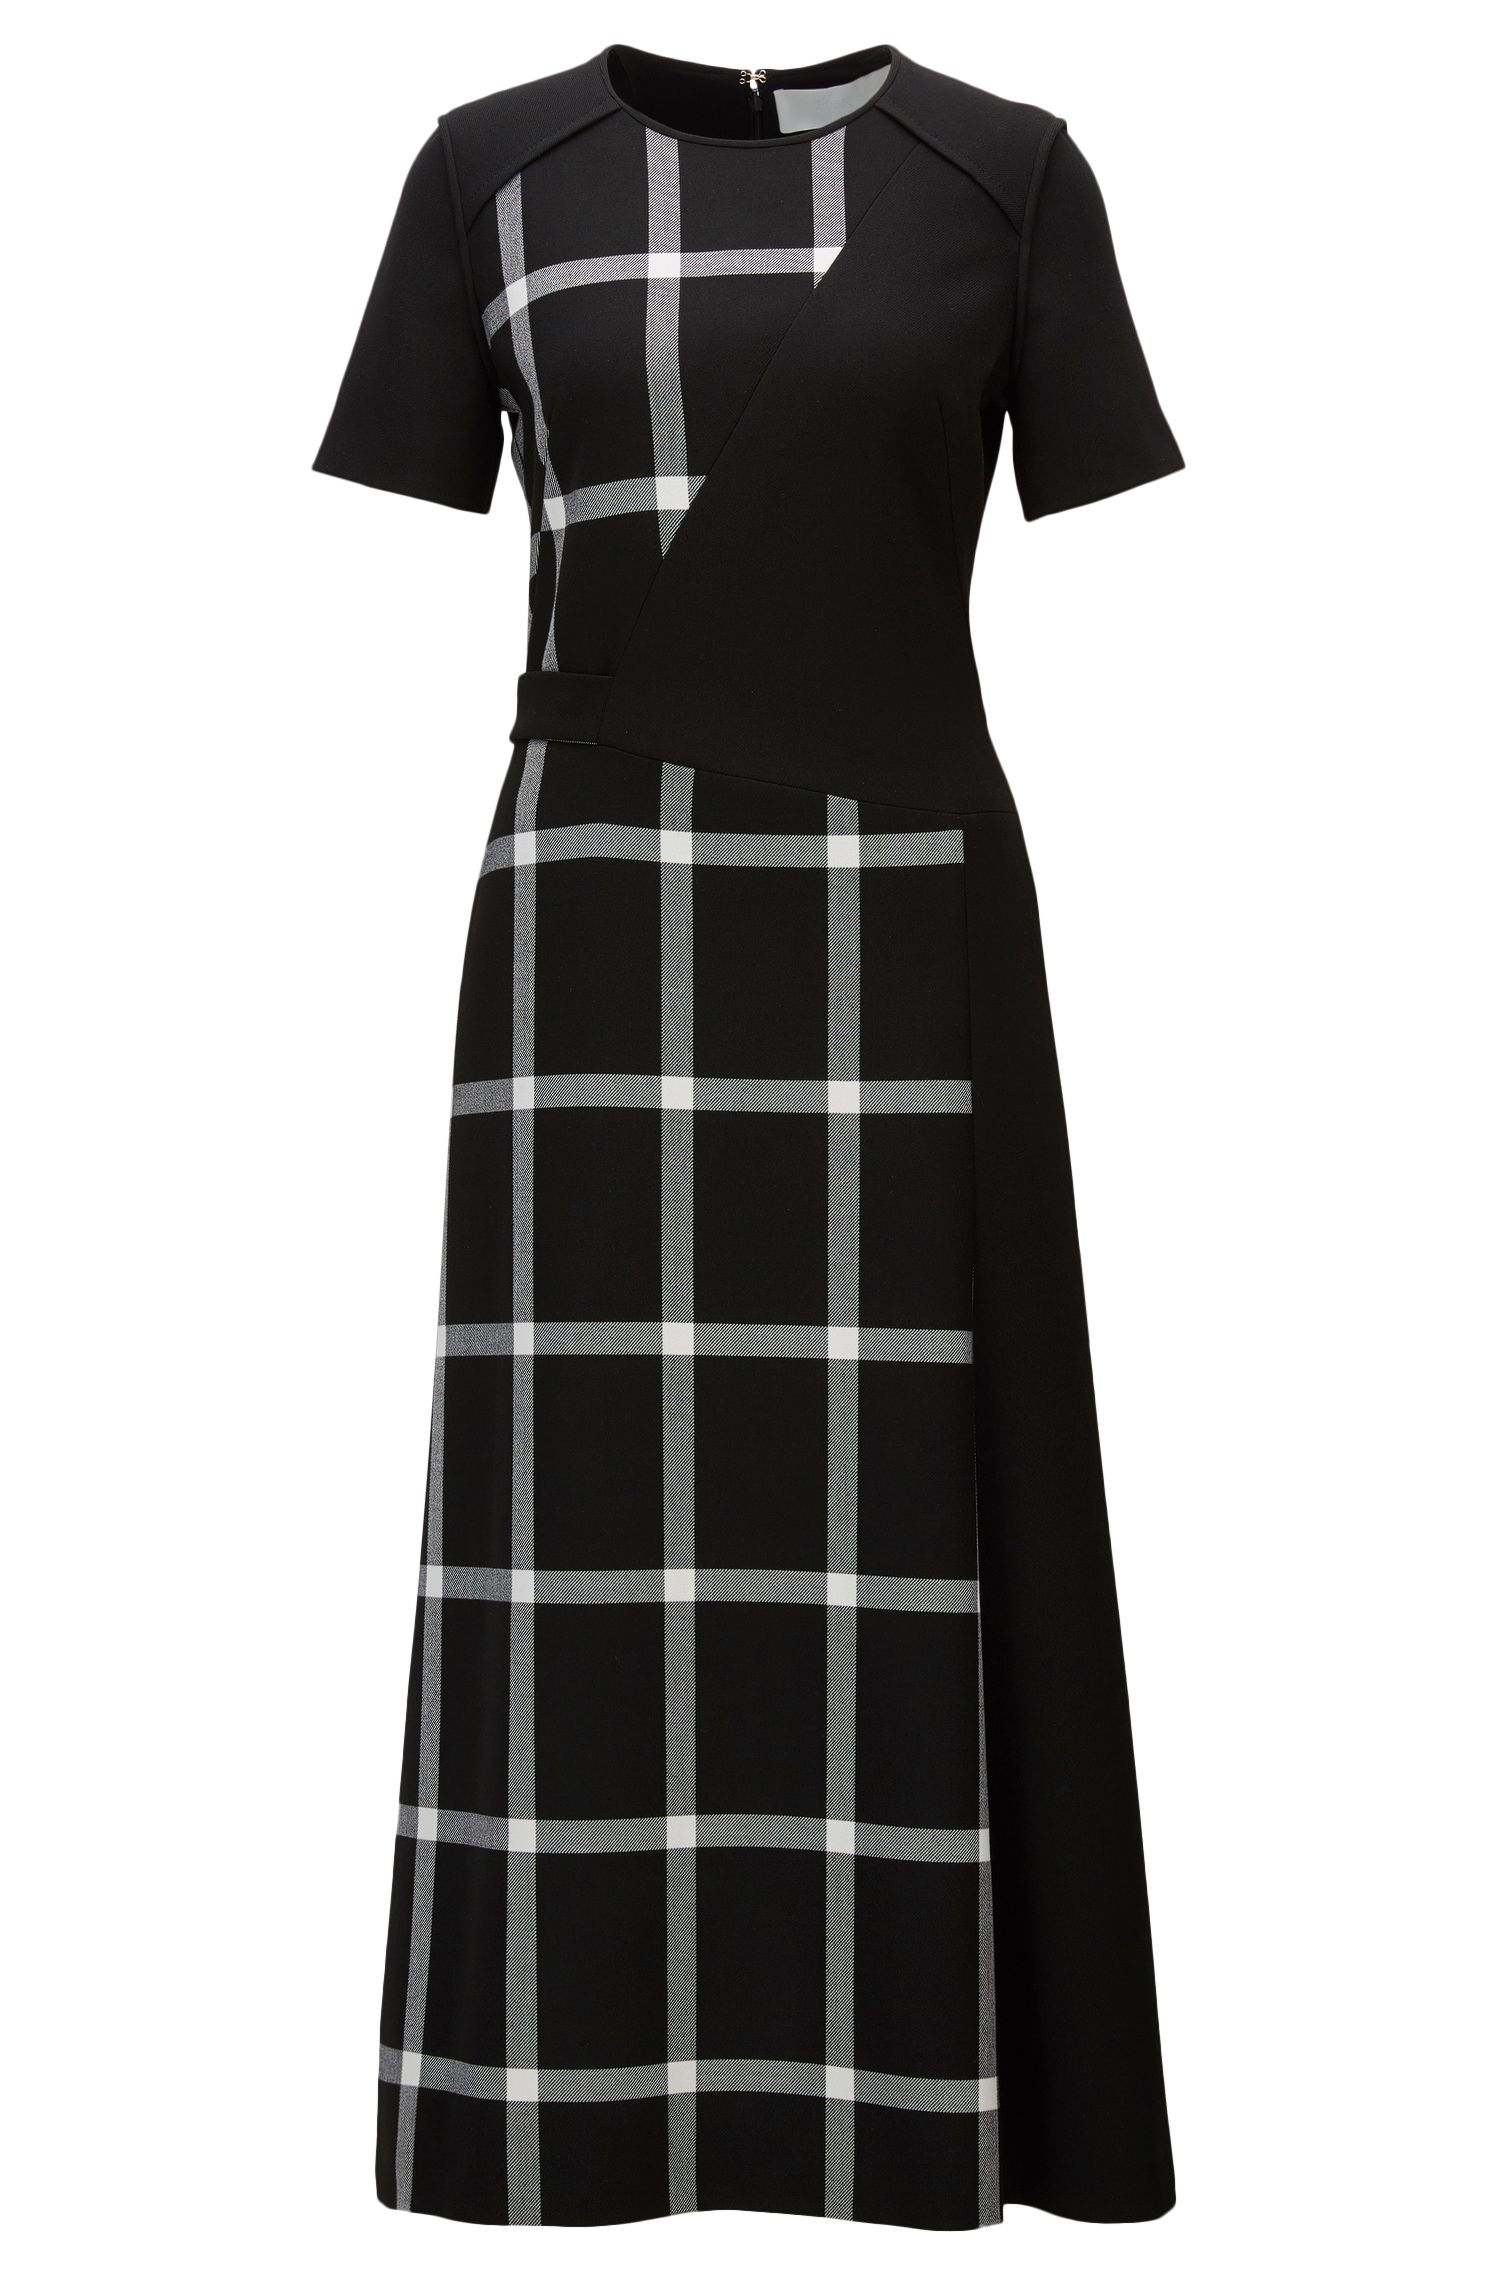 Midi-length dress with checked panelling